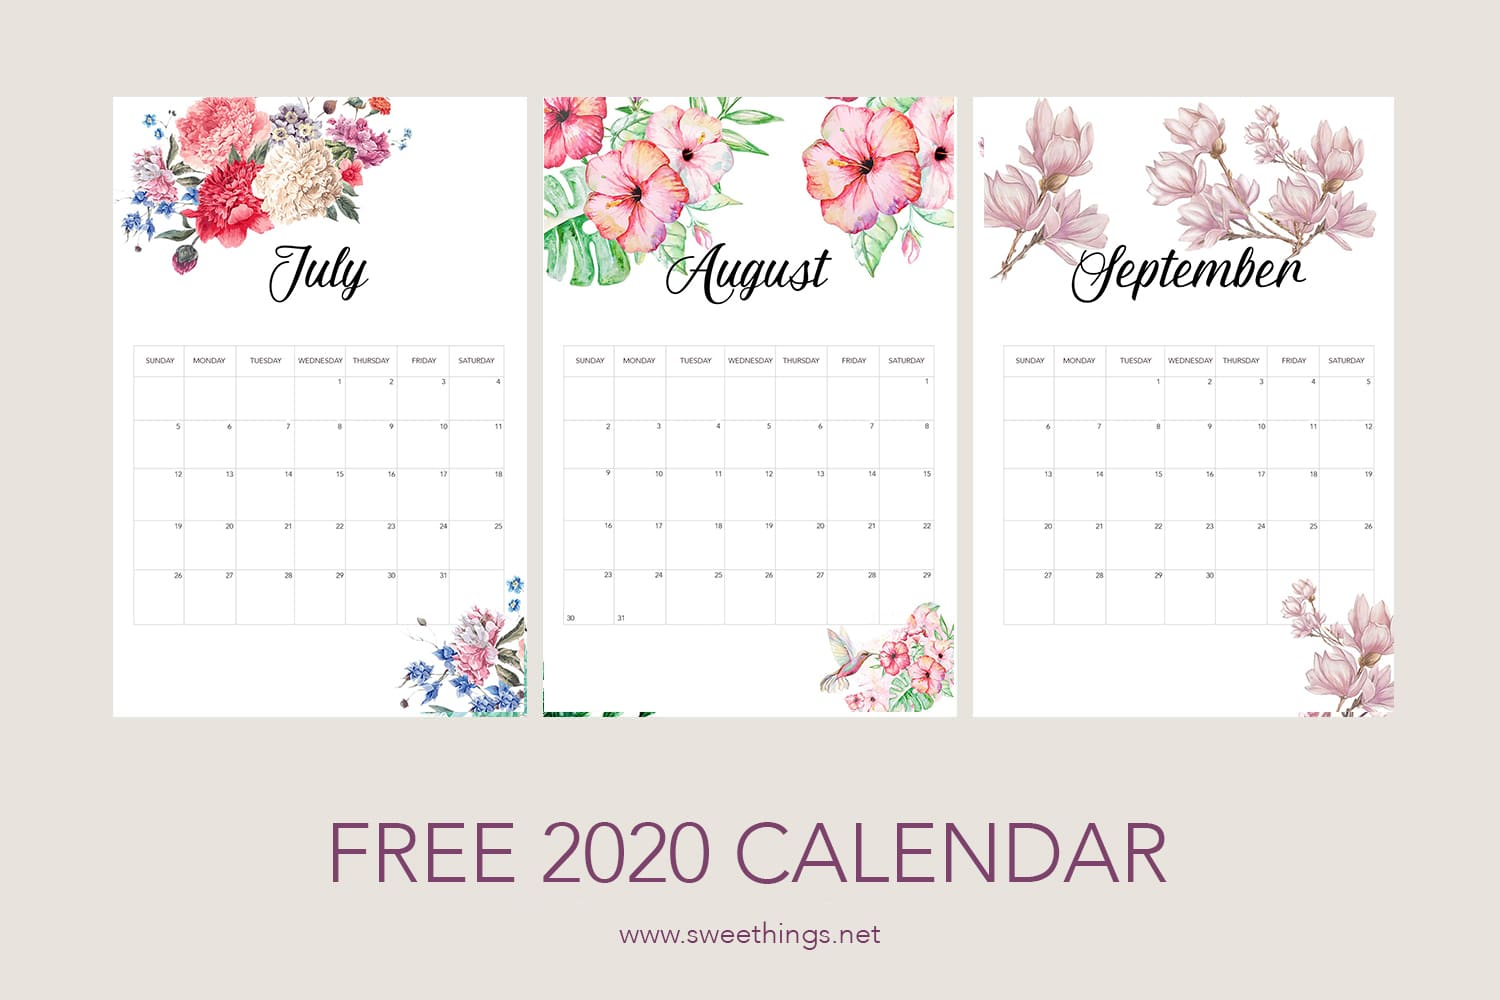 July to September 2020 calendar · Via www.sweethings.net